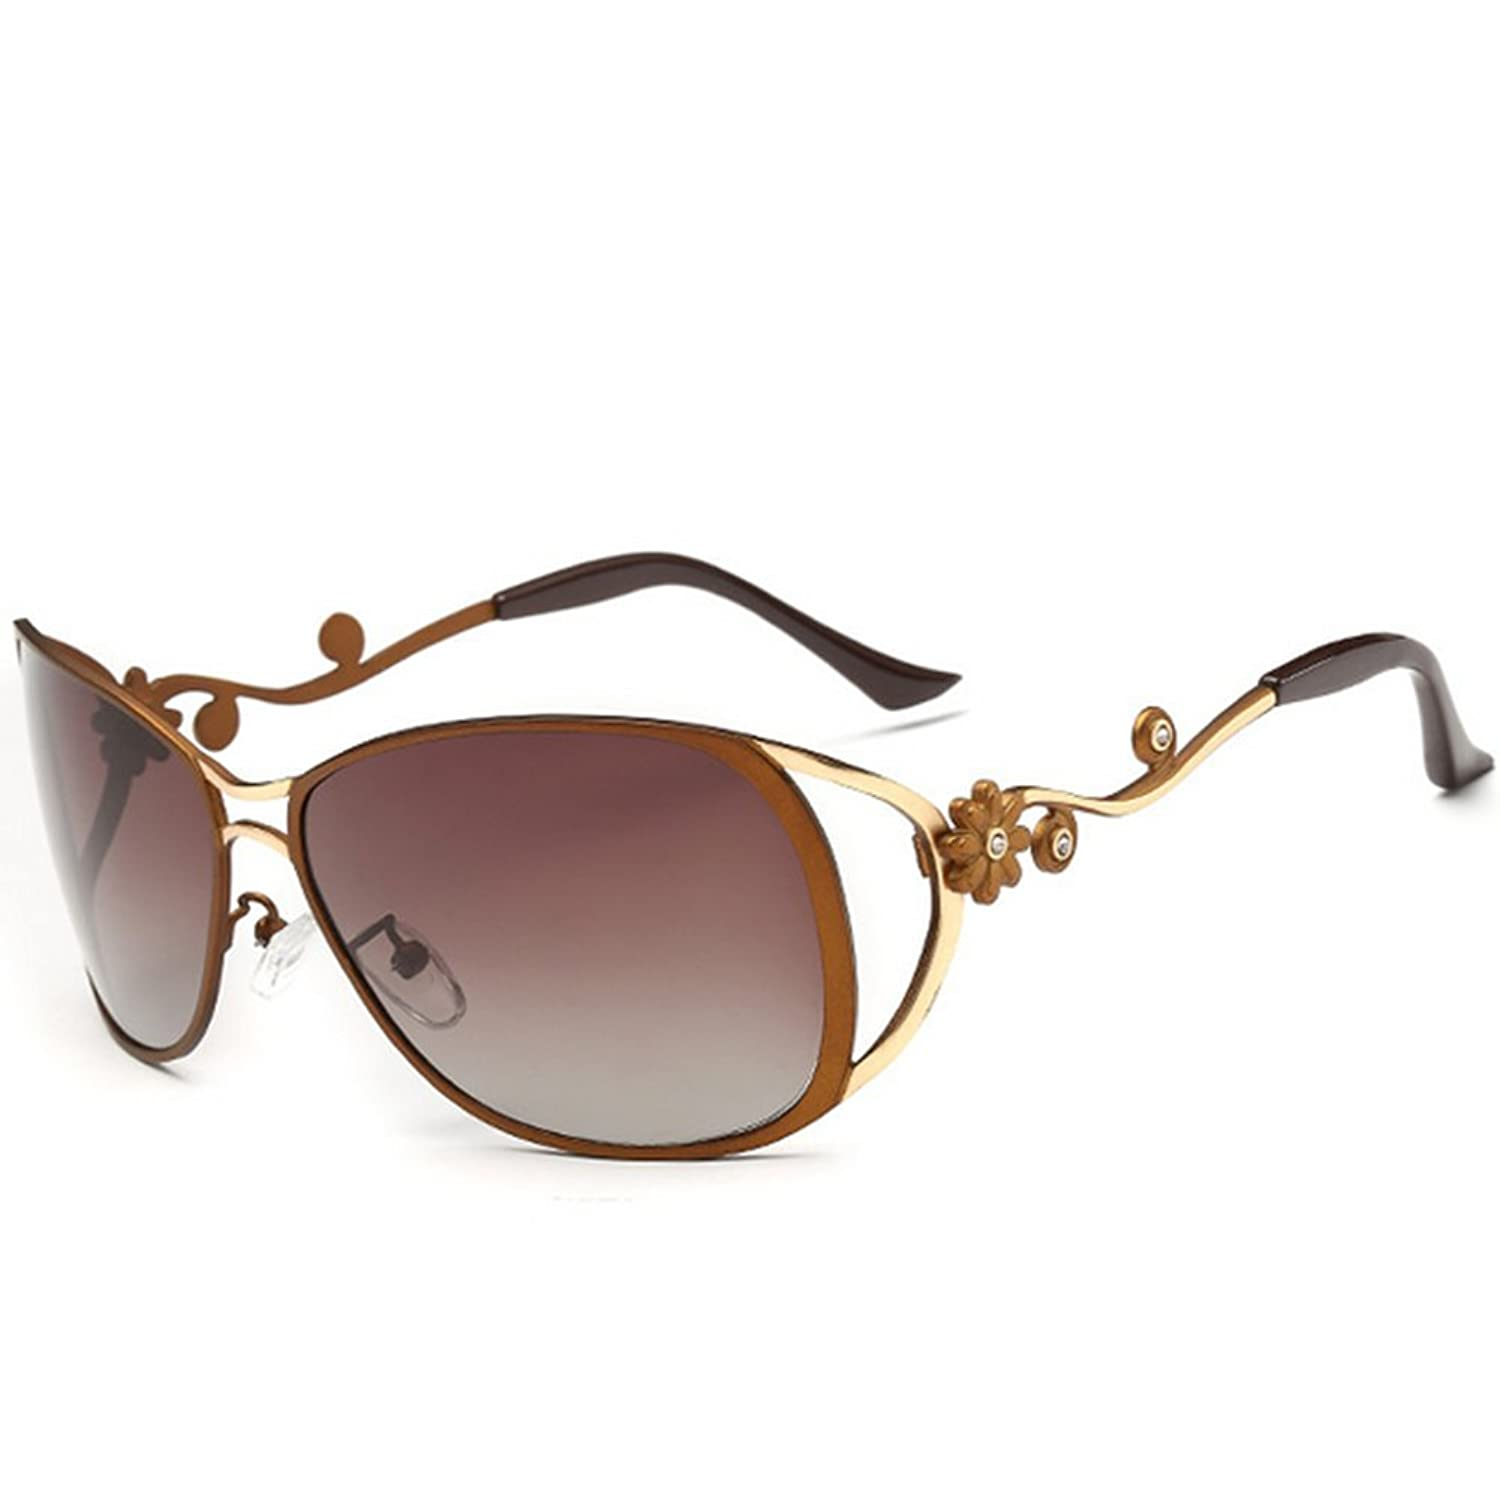 LuxuryLady-4 Sexy Lady Bend Necessary in Summer Fashion Women Driving Travel Sunglasses